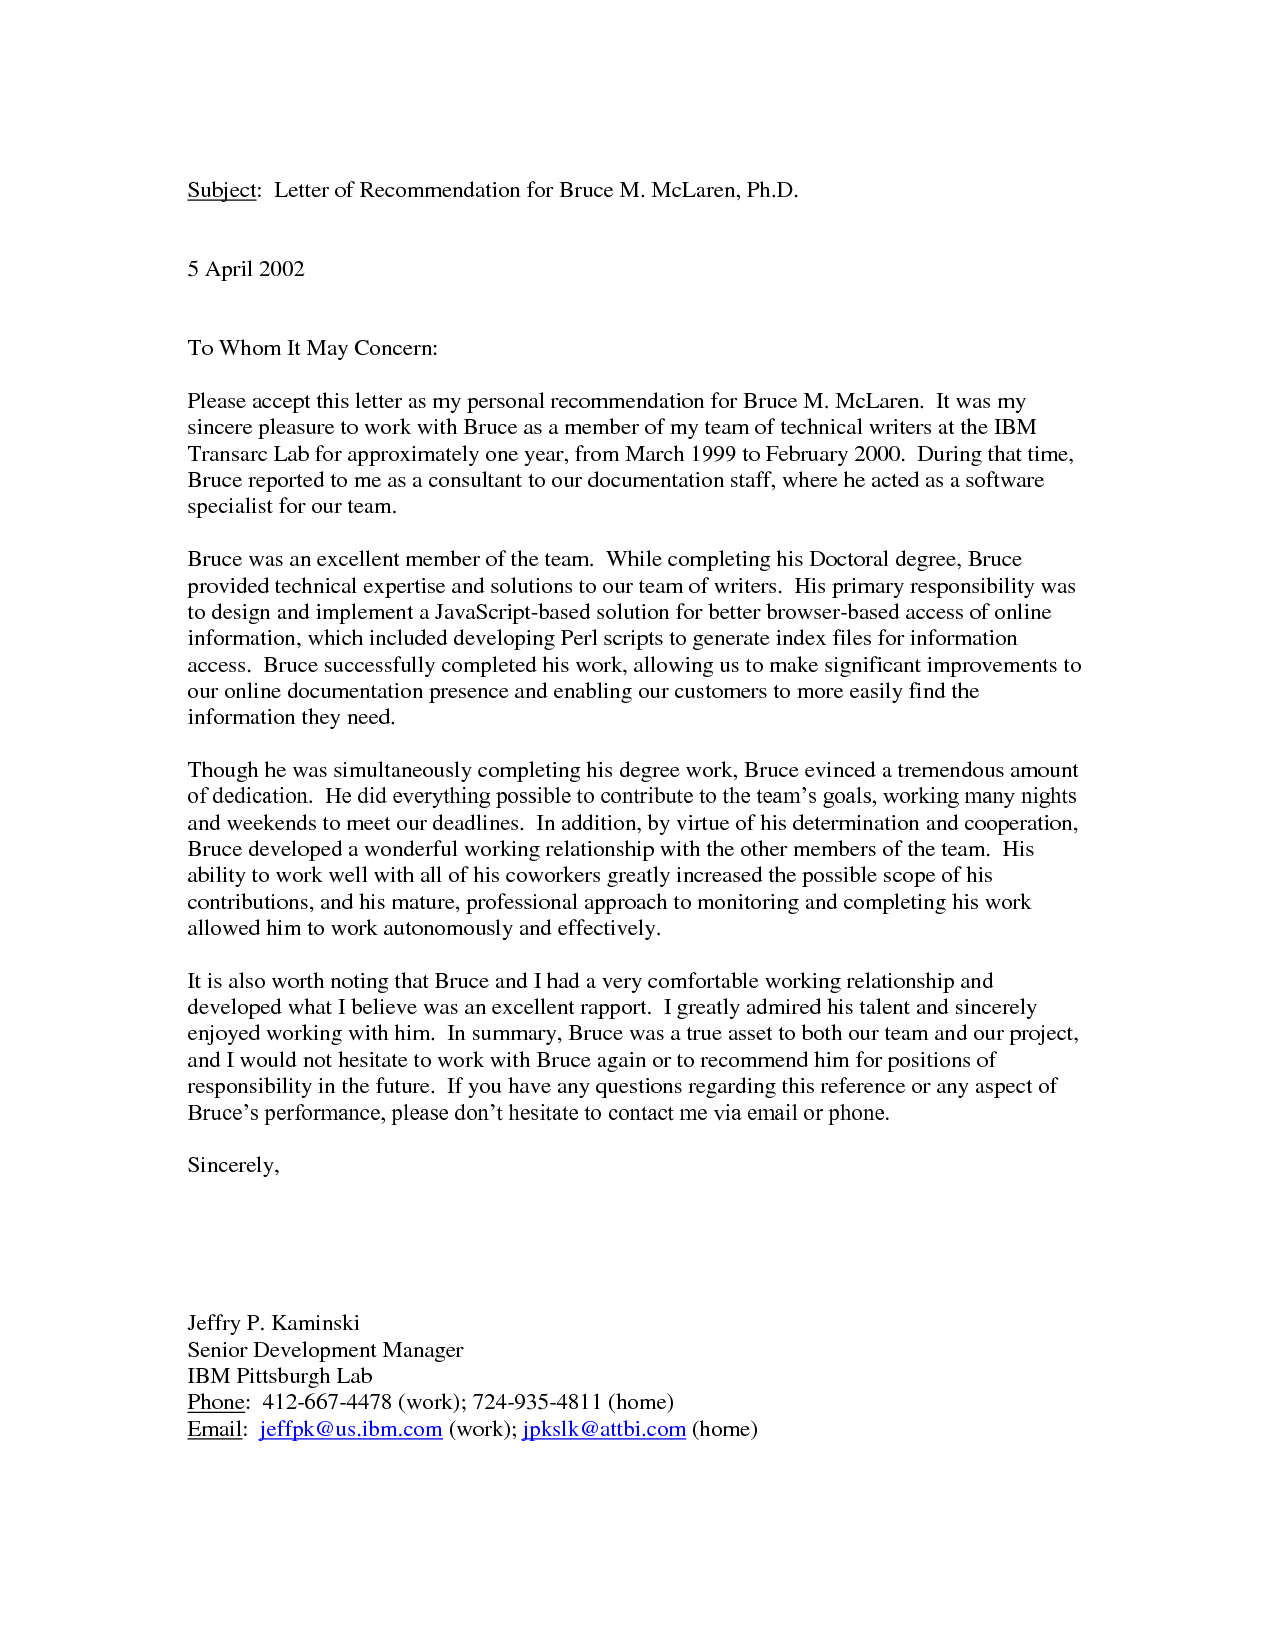 Personal Letters Of Recommendation Templates Template Ideas For Letter Of Rec Template